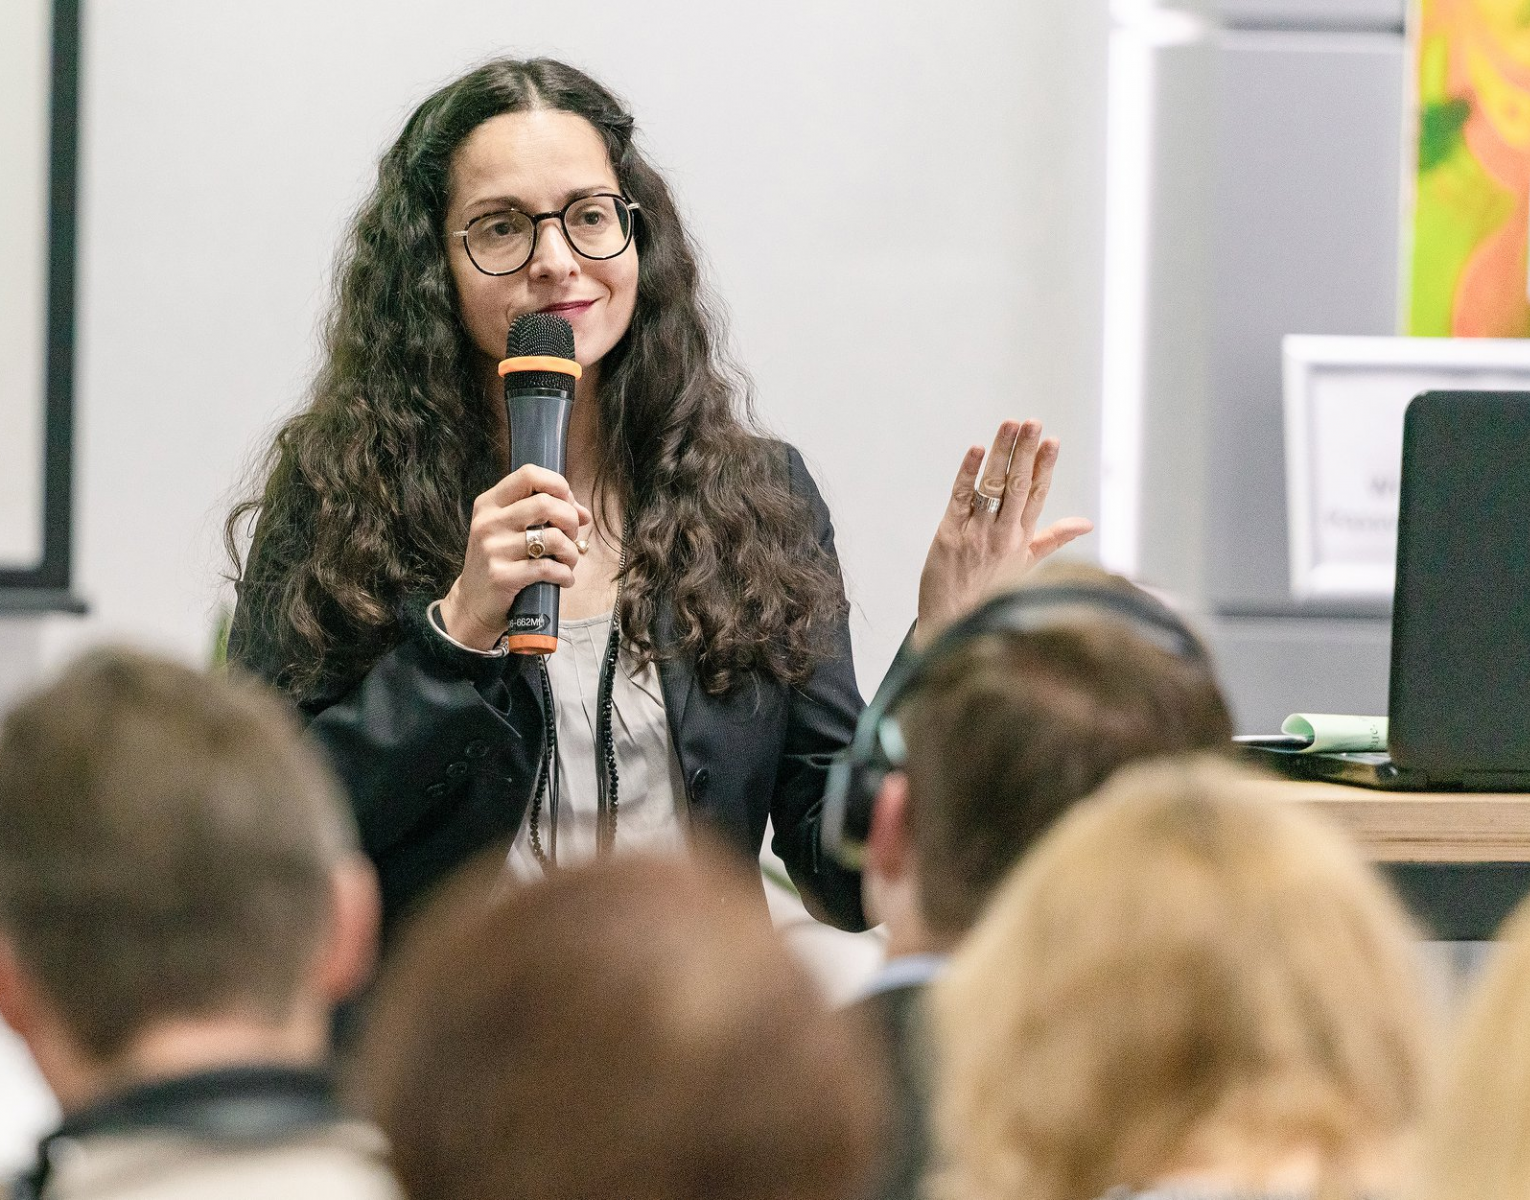 Present Past Forum. Processing the Past to Shape the Future  - 14 June 2019, Kyiv.